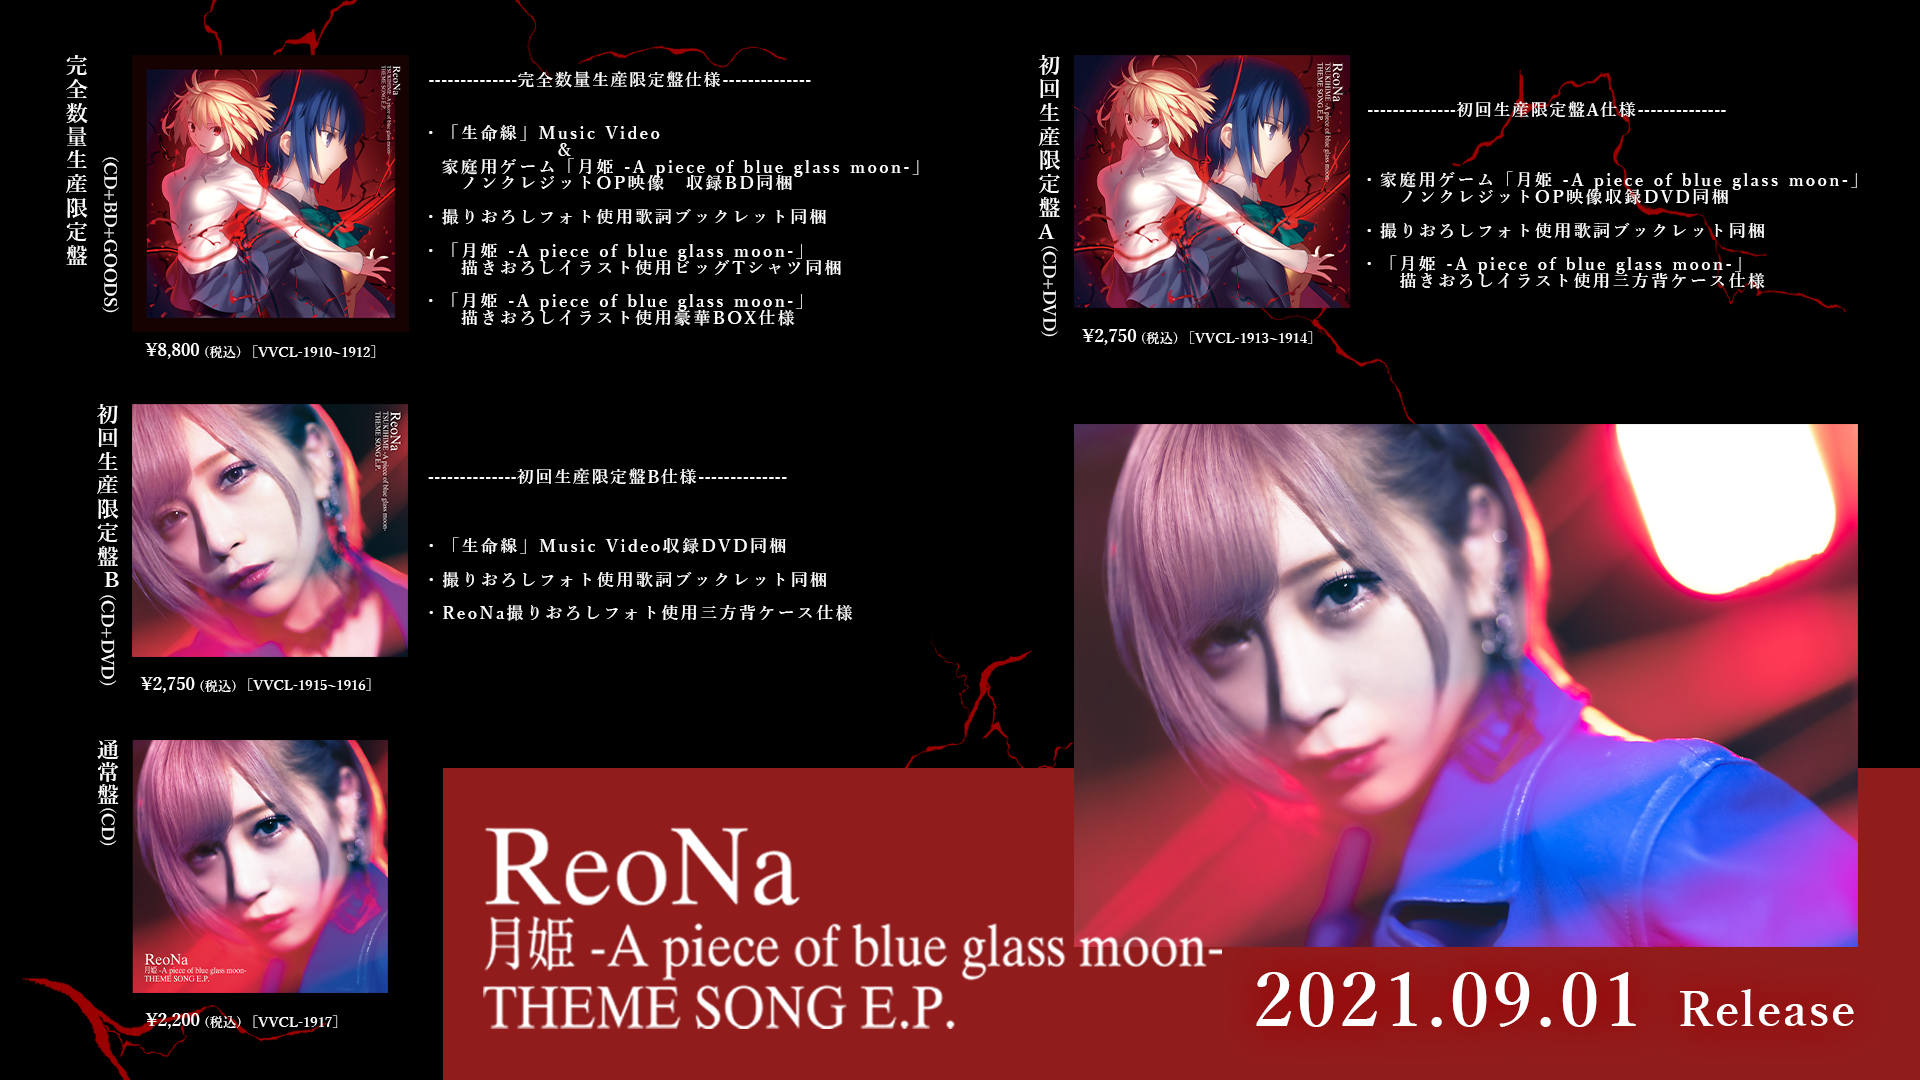 ReoNa『月姫 -A piece of blue glass moon- THEME SONG E.P.』 (c)TYPE-MOON